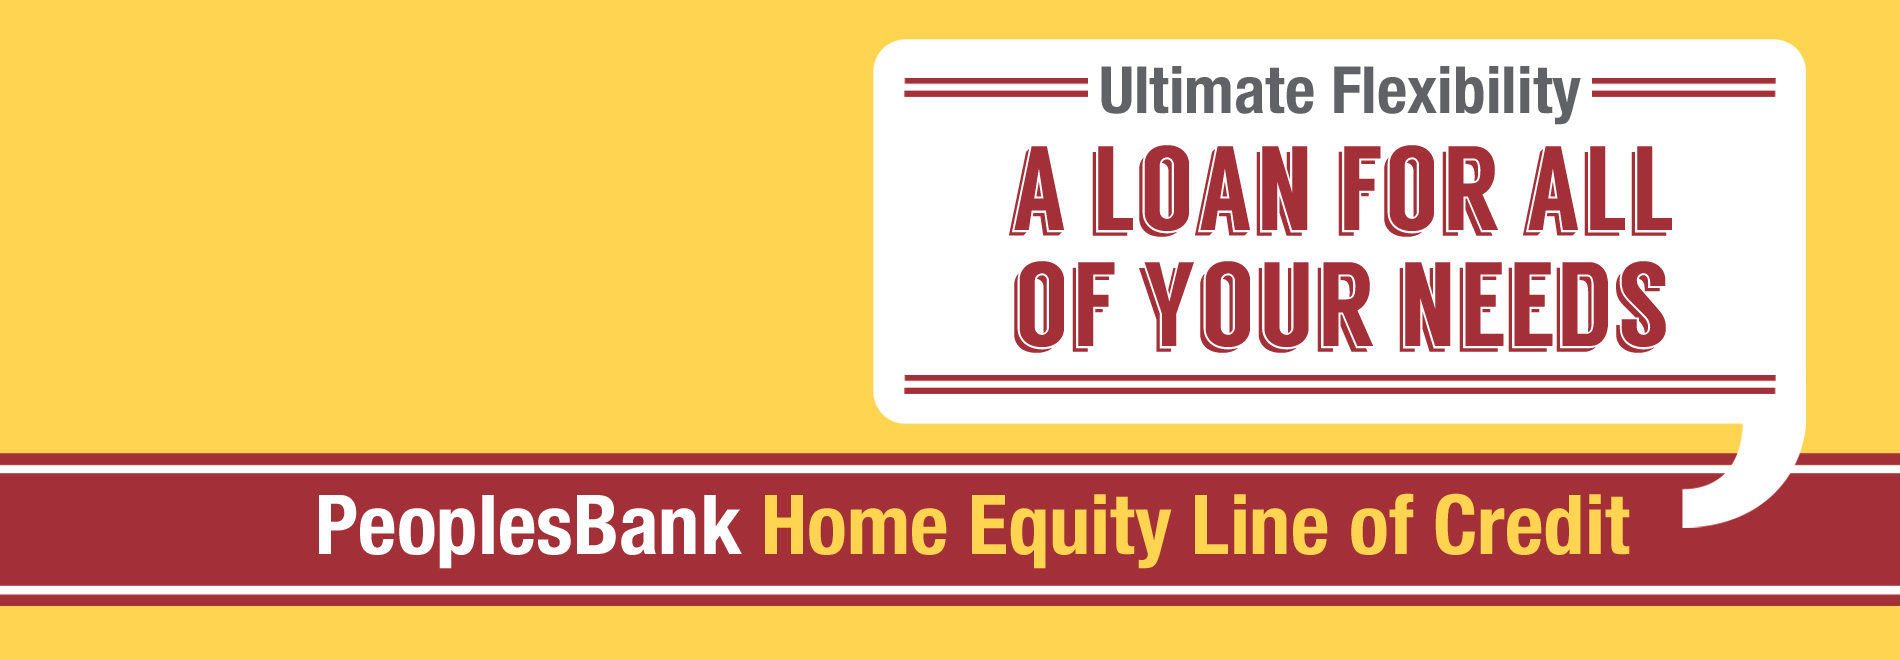 PeoplesBank Home Equity Line of Credit - Ultimate Flexibility